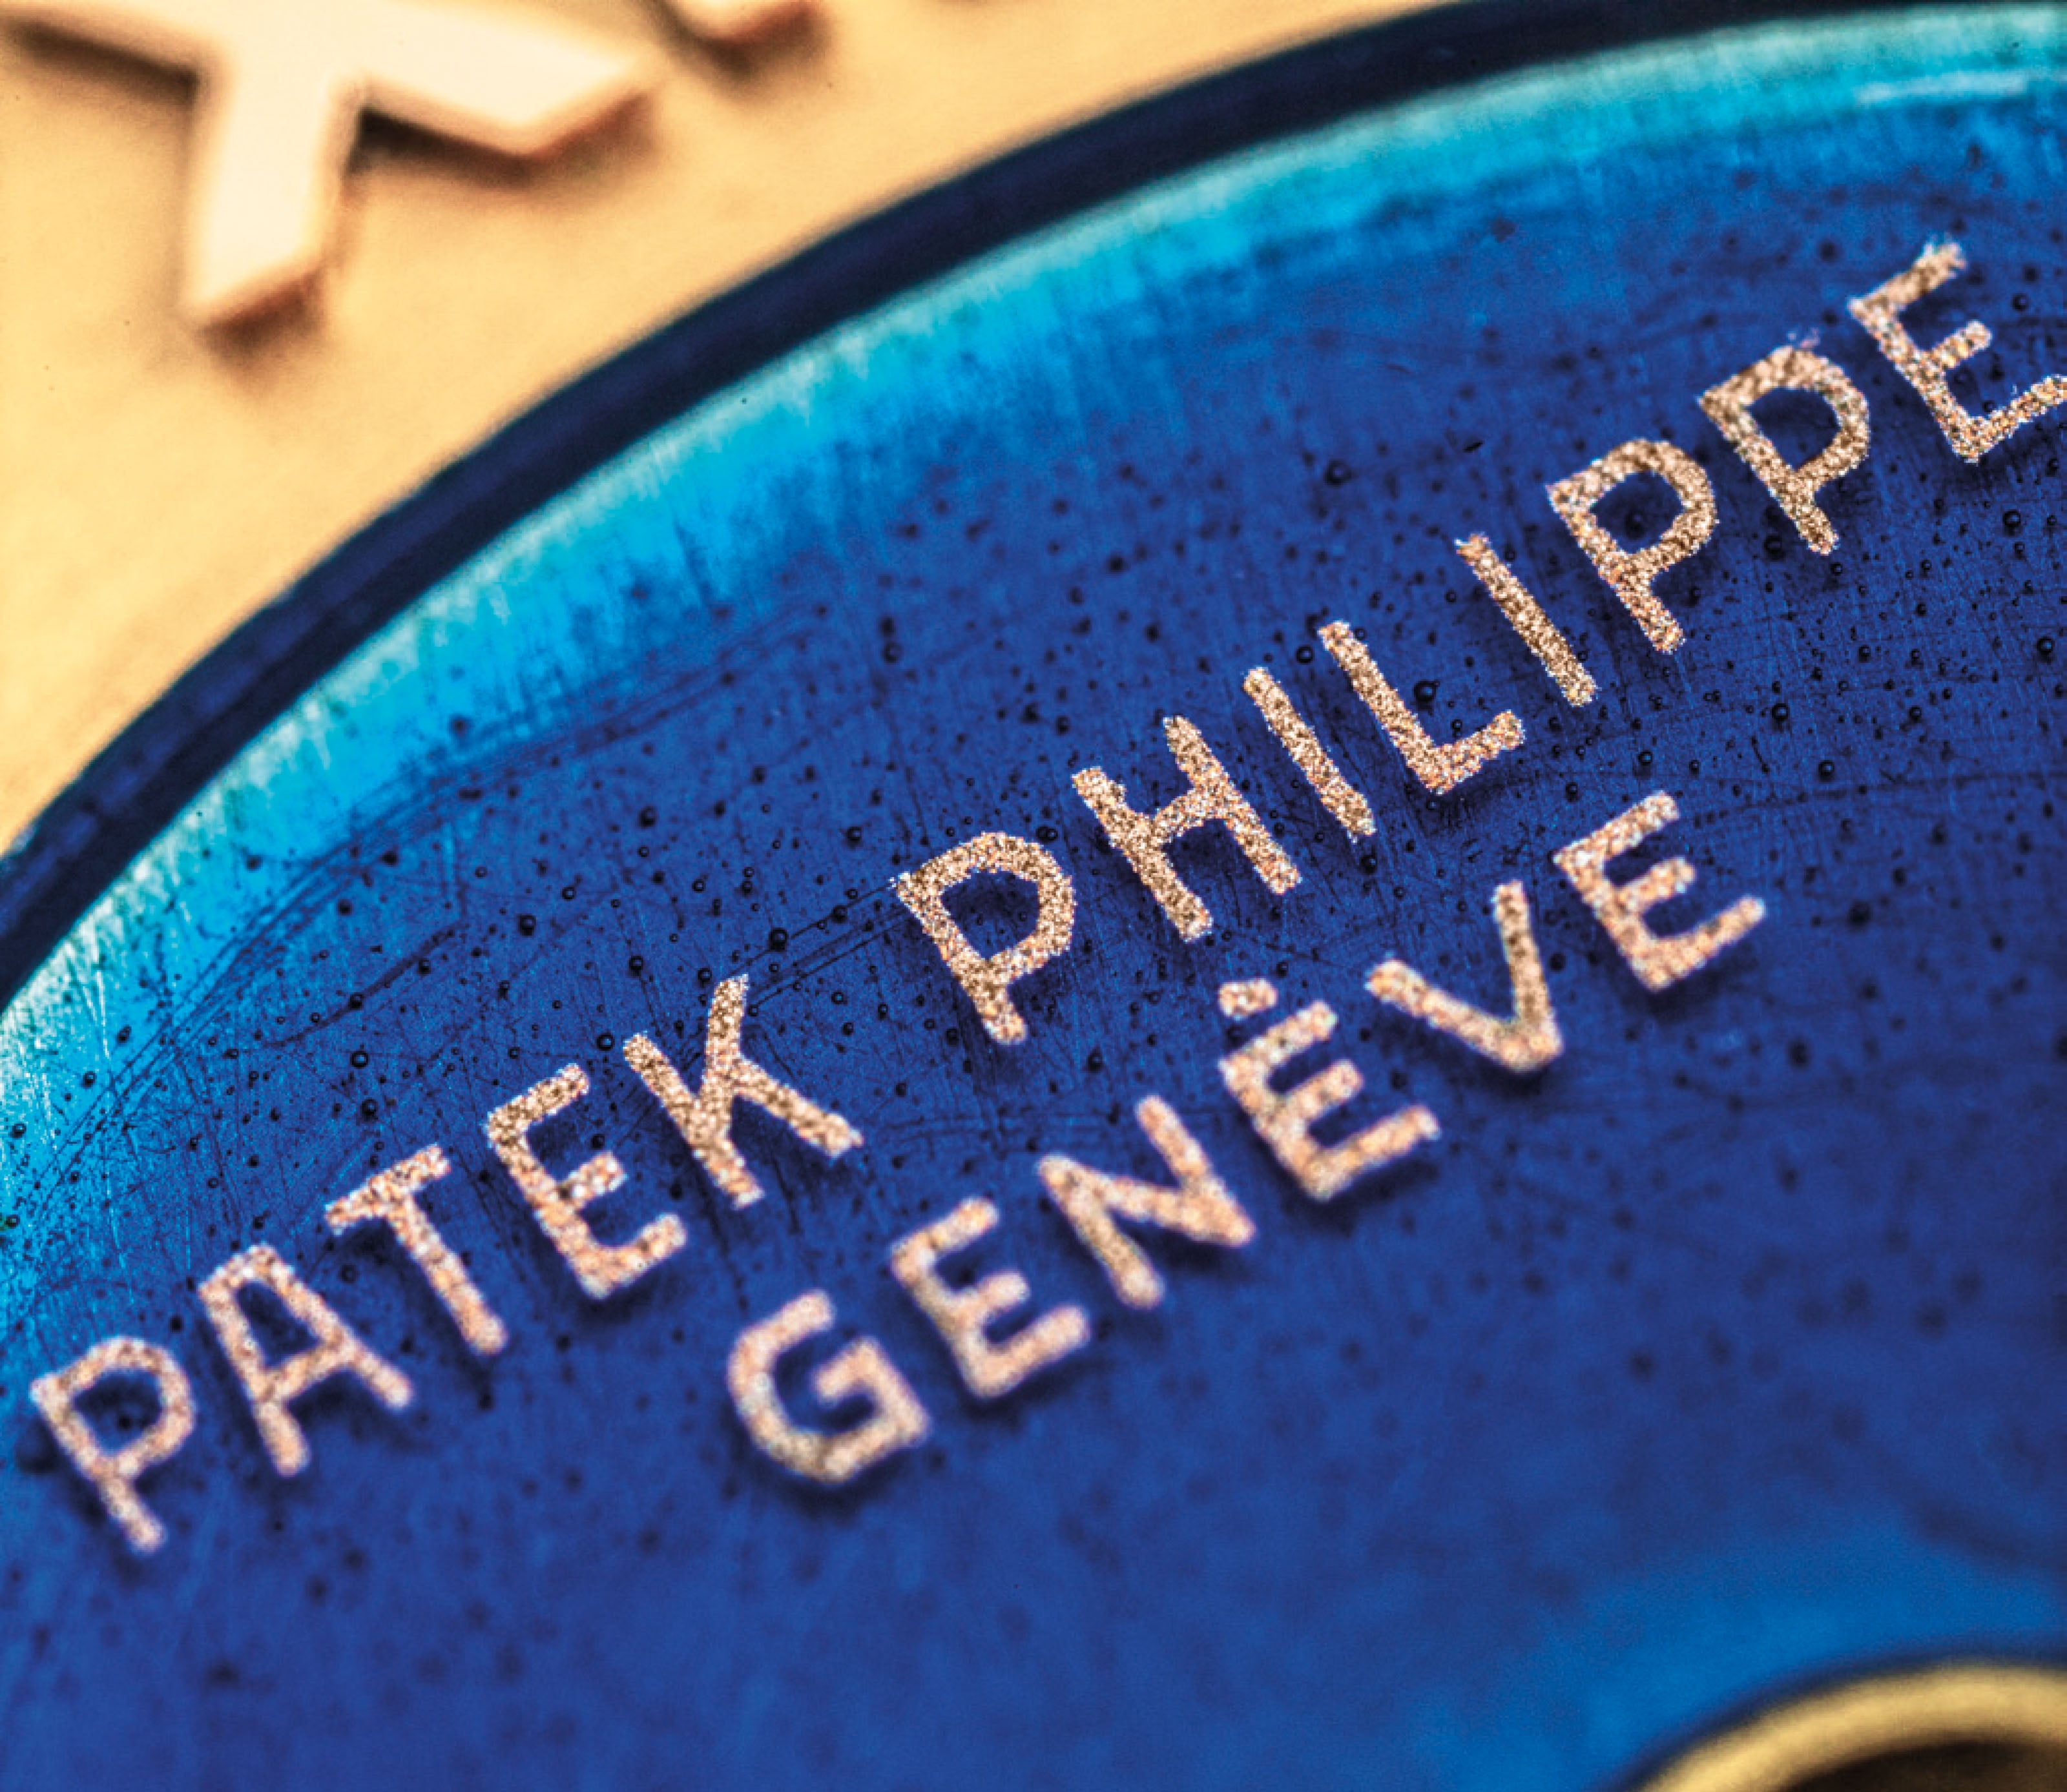 Patek Philippe ref 2523 double signed by Gobbi Milano enamel dial in The Art of Enamel Dials for A Collected Man London